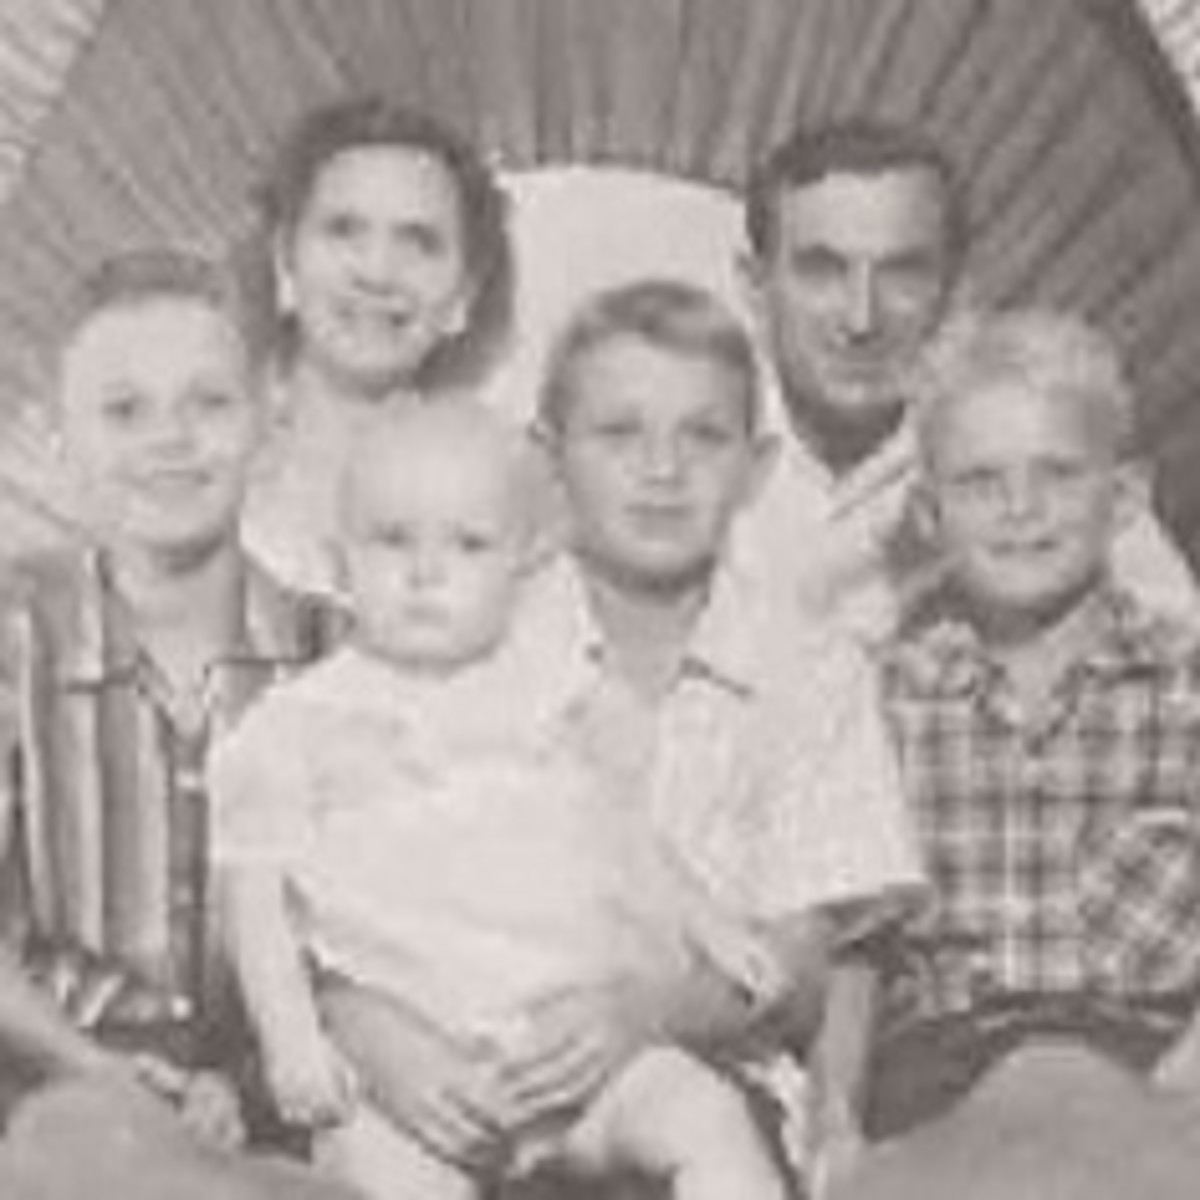 Mom and Dad, Dale, Paul holding me and Jimmy